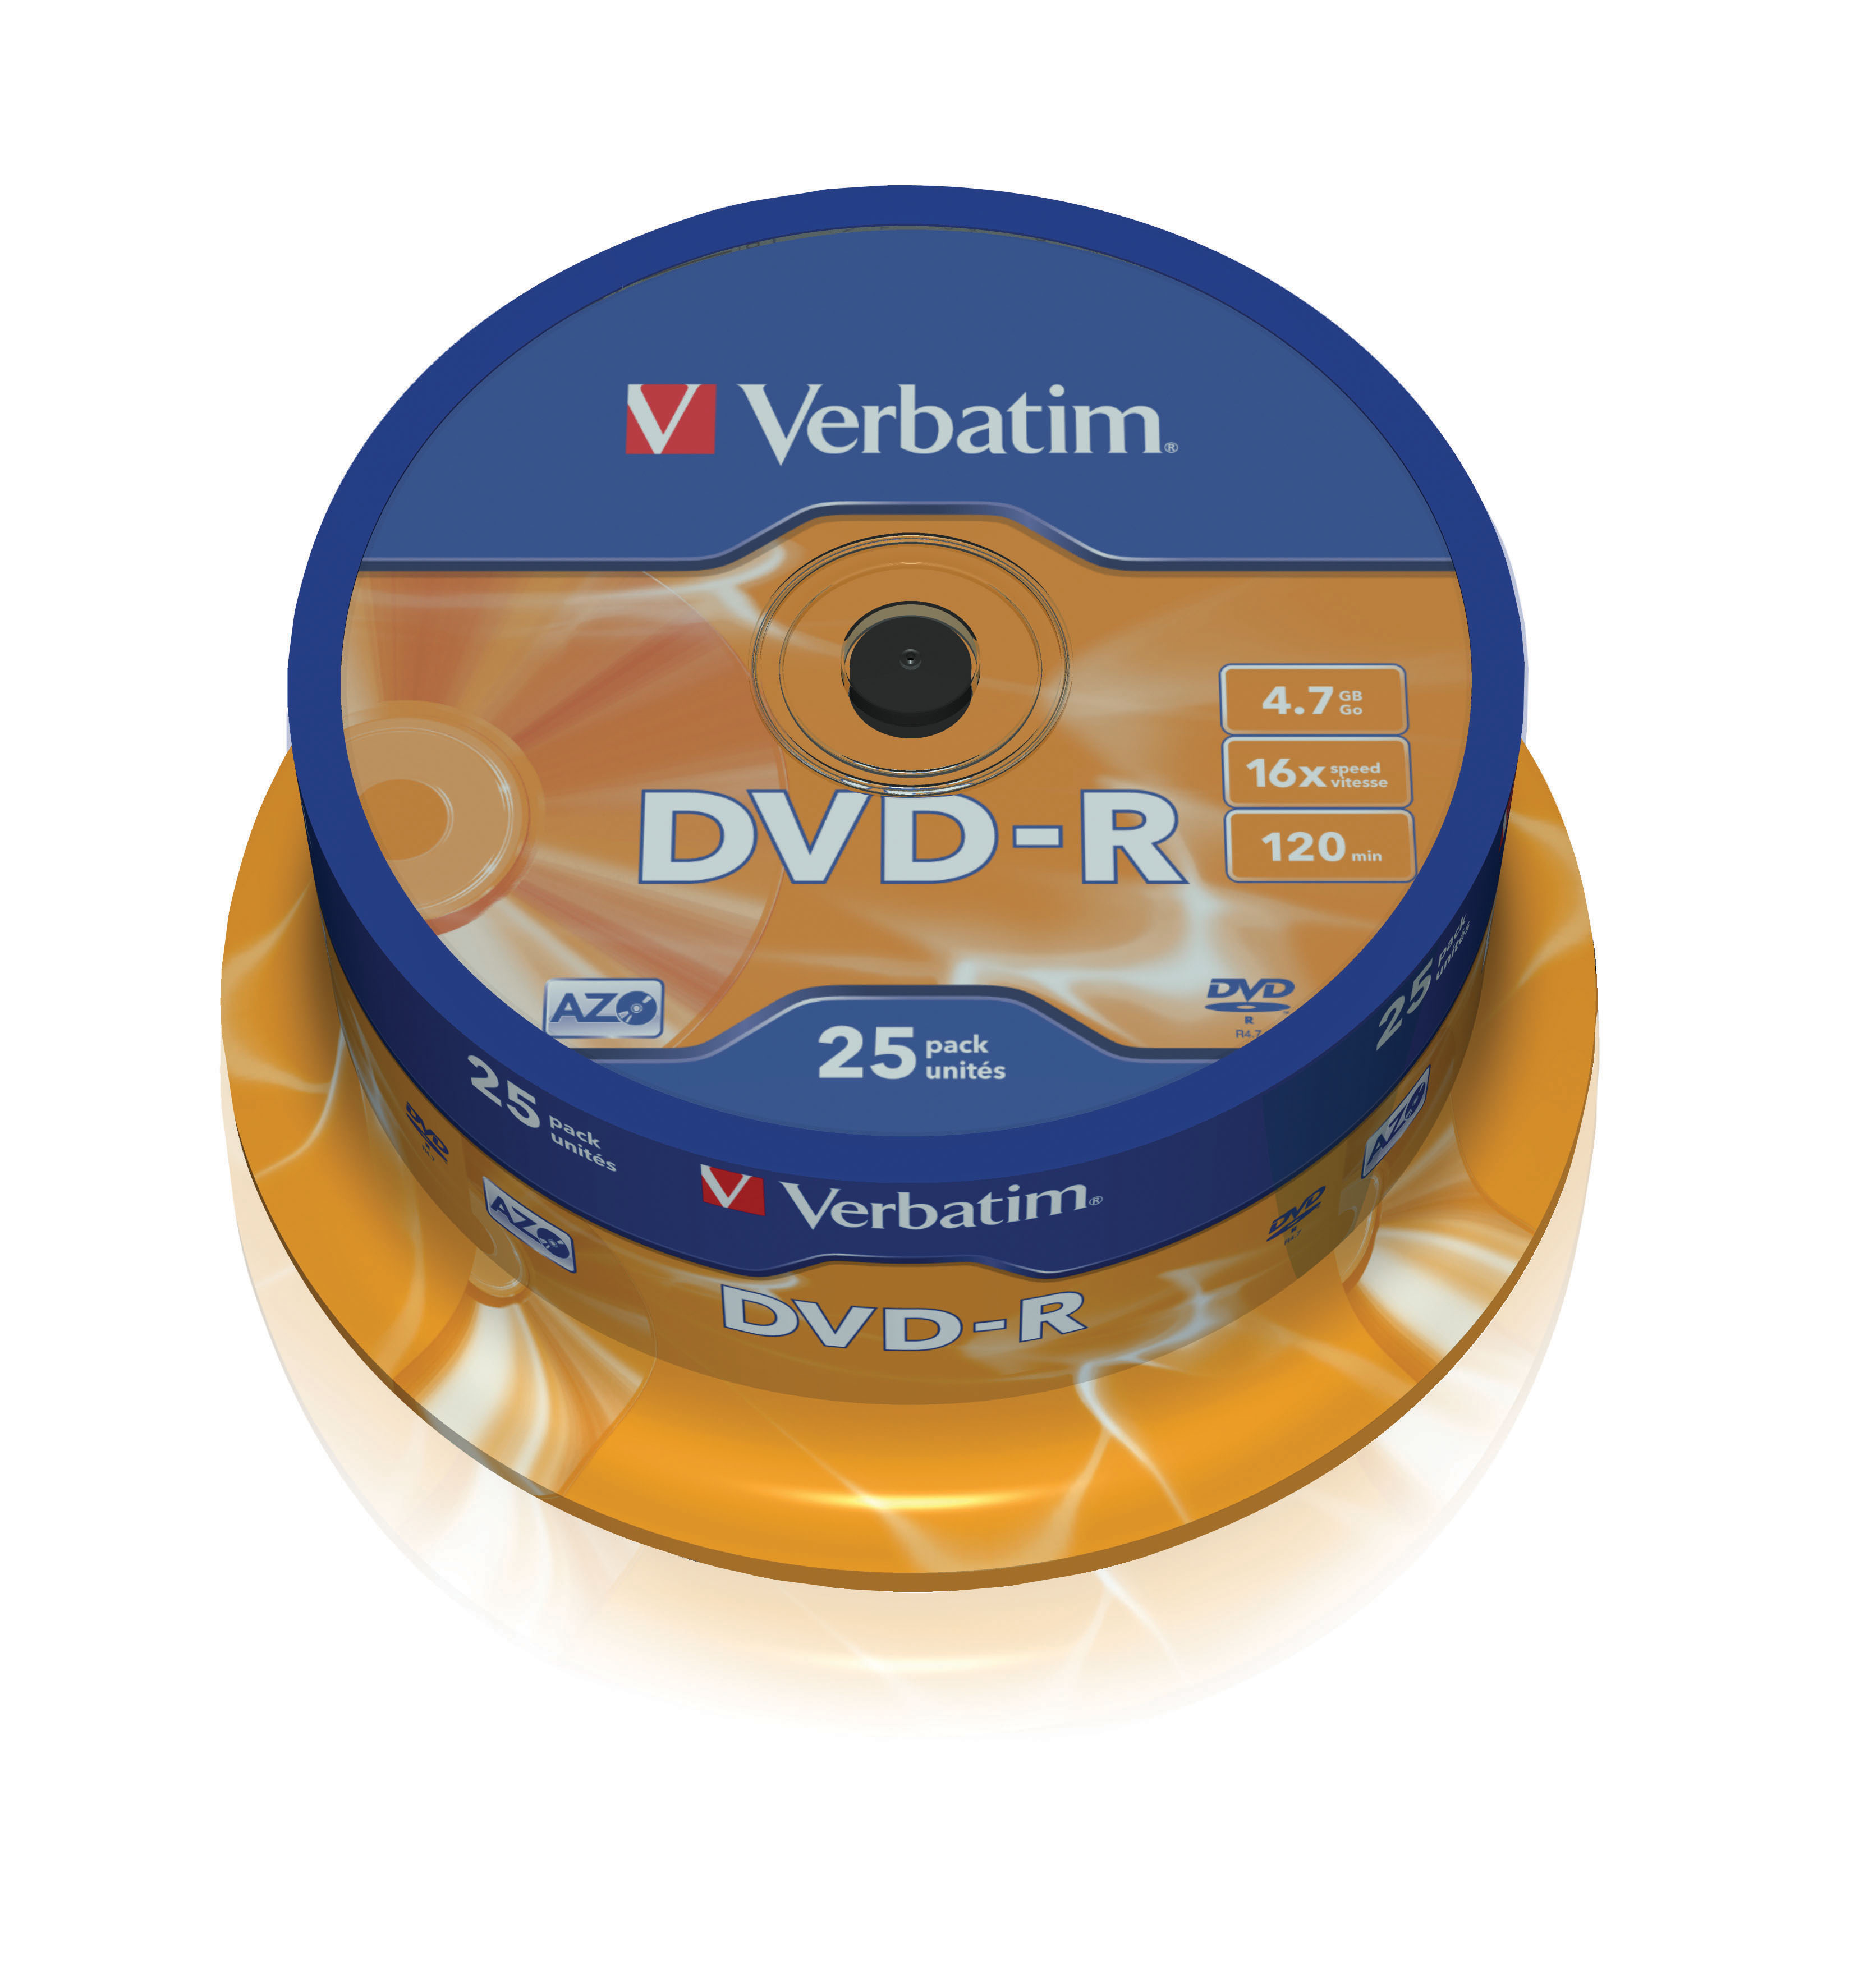 verbatim Verbatim Dvd-r 16x 25 4.7gb 25 Pack Spindle 43522 - AD01